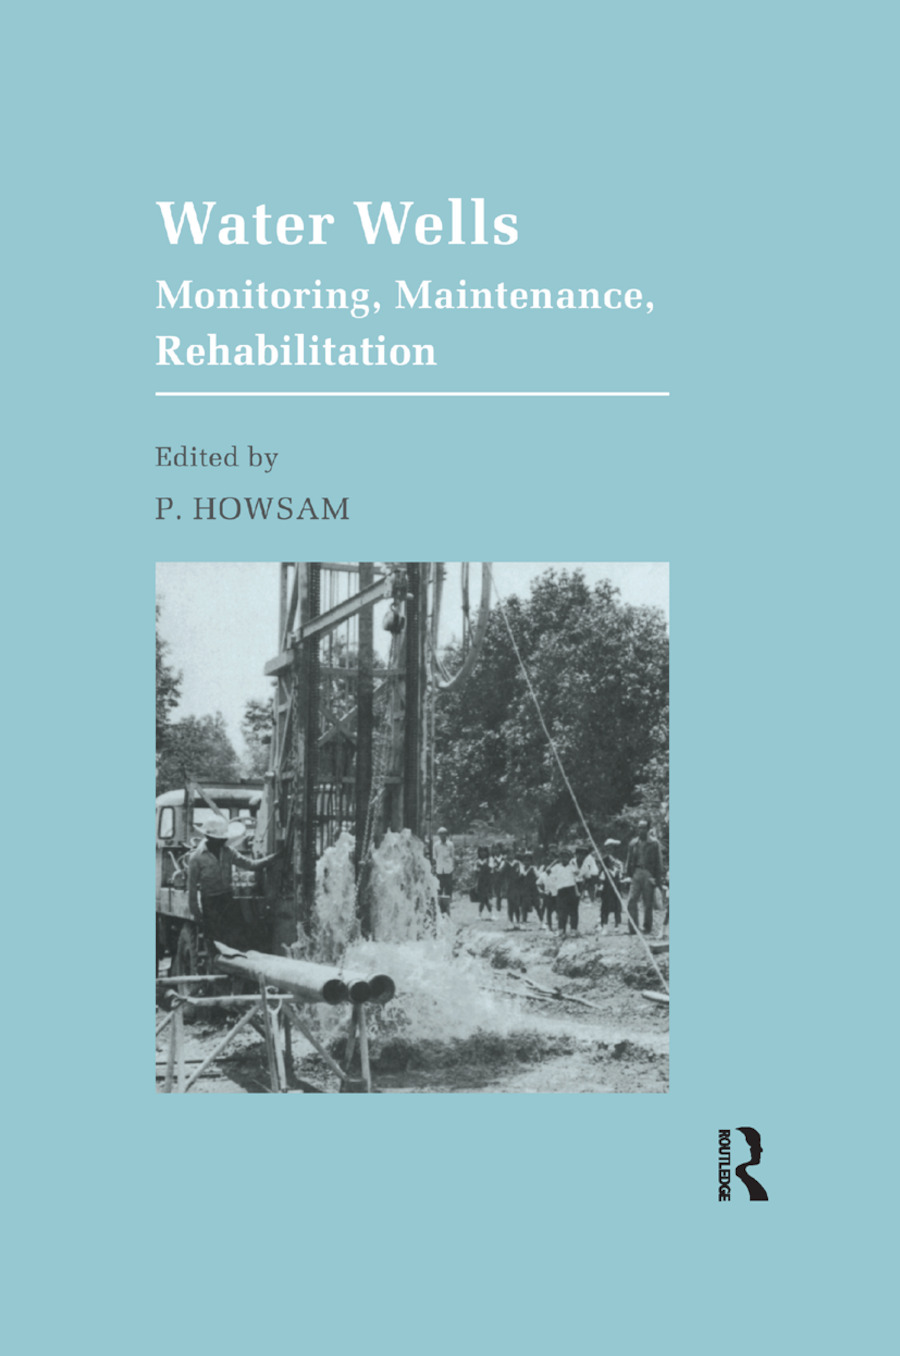 Water Wells - Monitoring, Maintenance, Rehabilitation: Proceedings of the International Groundwater Engineering Conference, Cranfield Institute of Technology, UK, 1st Edition (Paperback) book cover